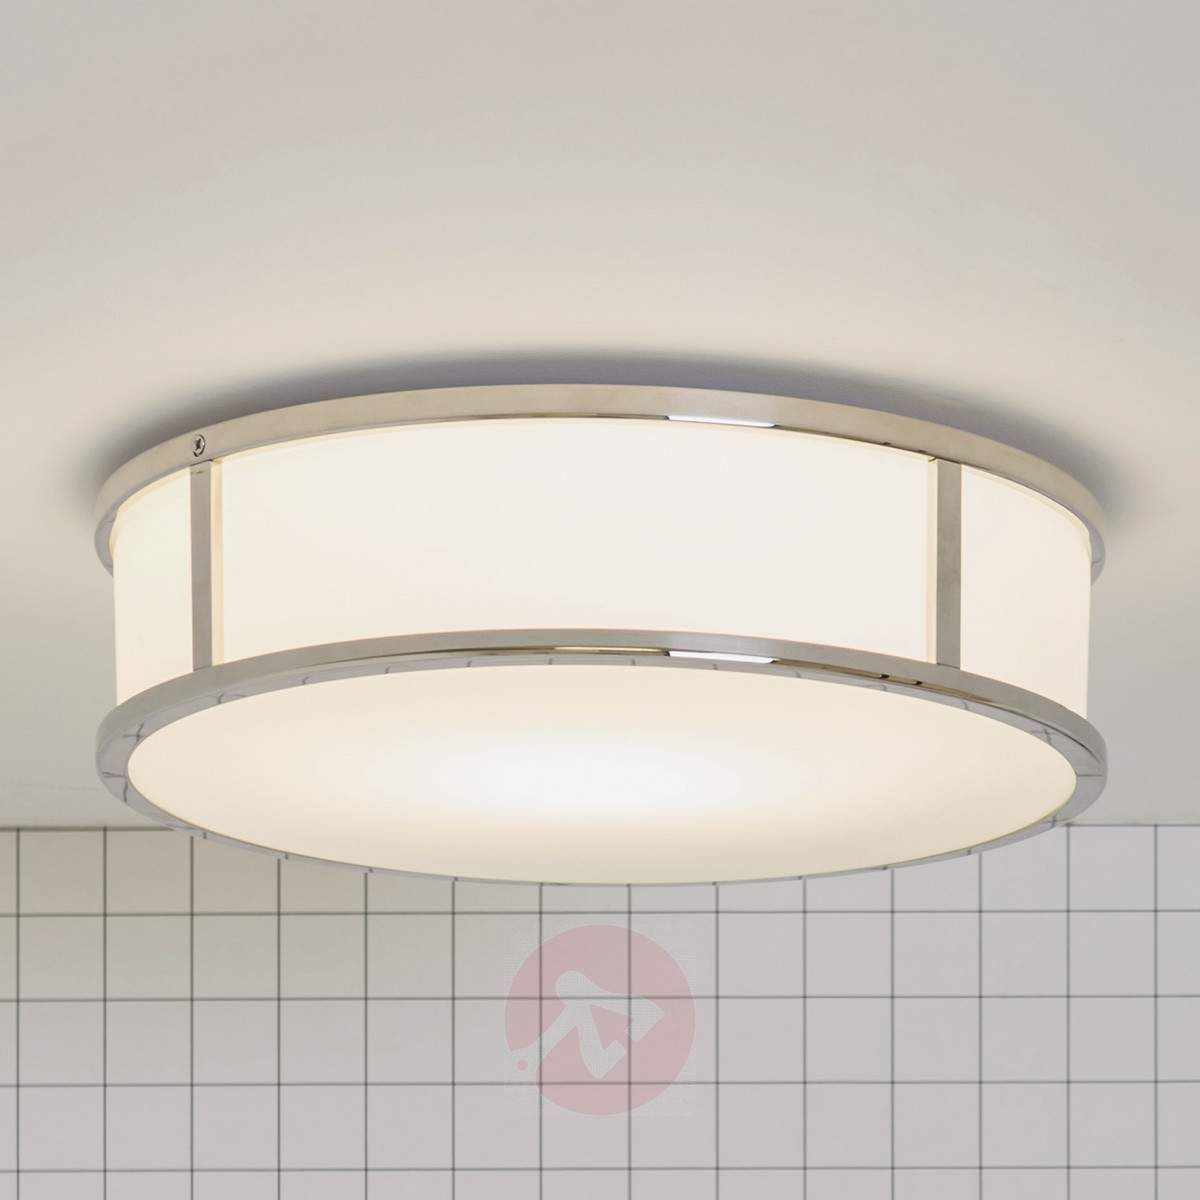 Mashiko Round 300 Bathroom Ceiling Light Lights Co Uk Ceiling Lights Bathroom Ceiling Light Lighting